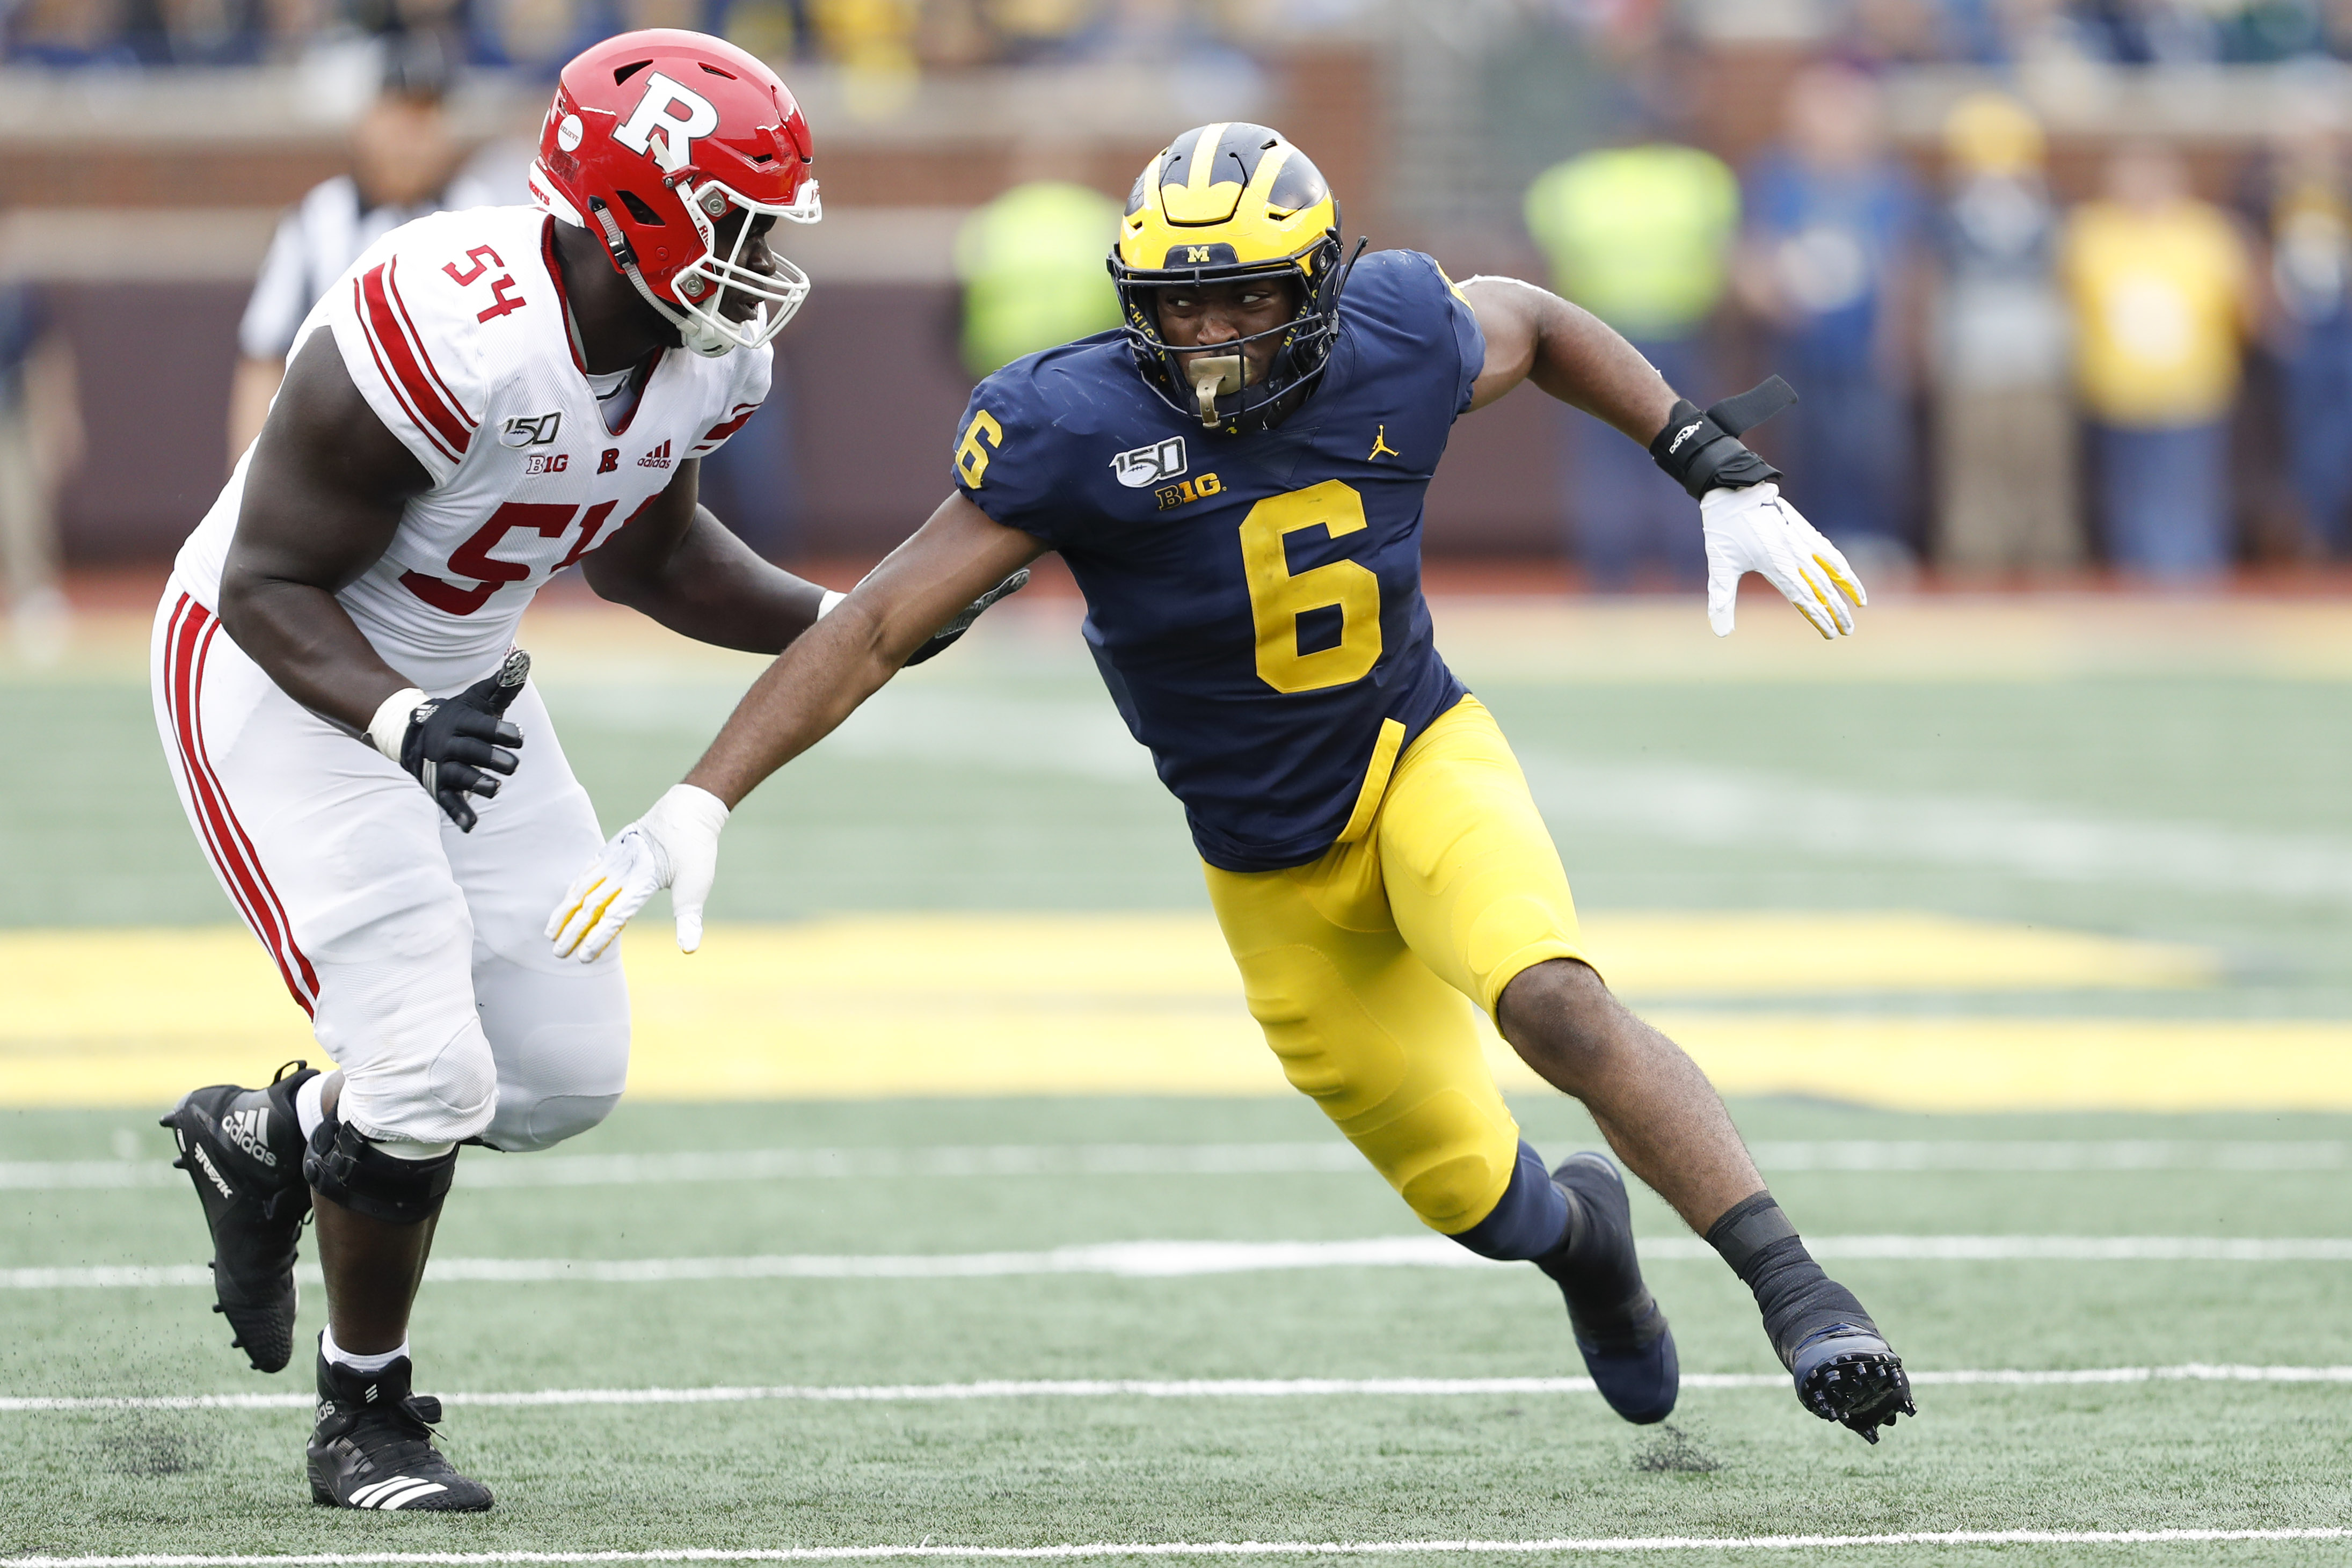 2020 NFL Scouting Combine: 5 Edge Rushers for the Jaguars to Focus on in Indianapolis